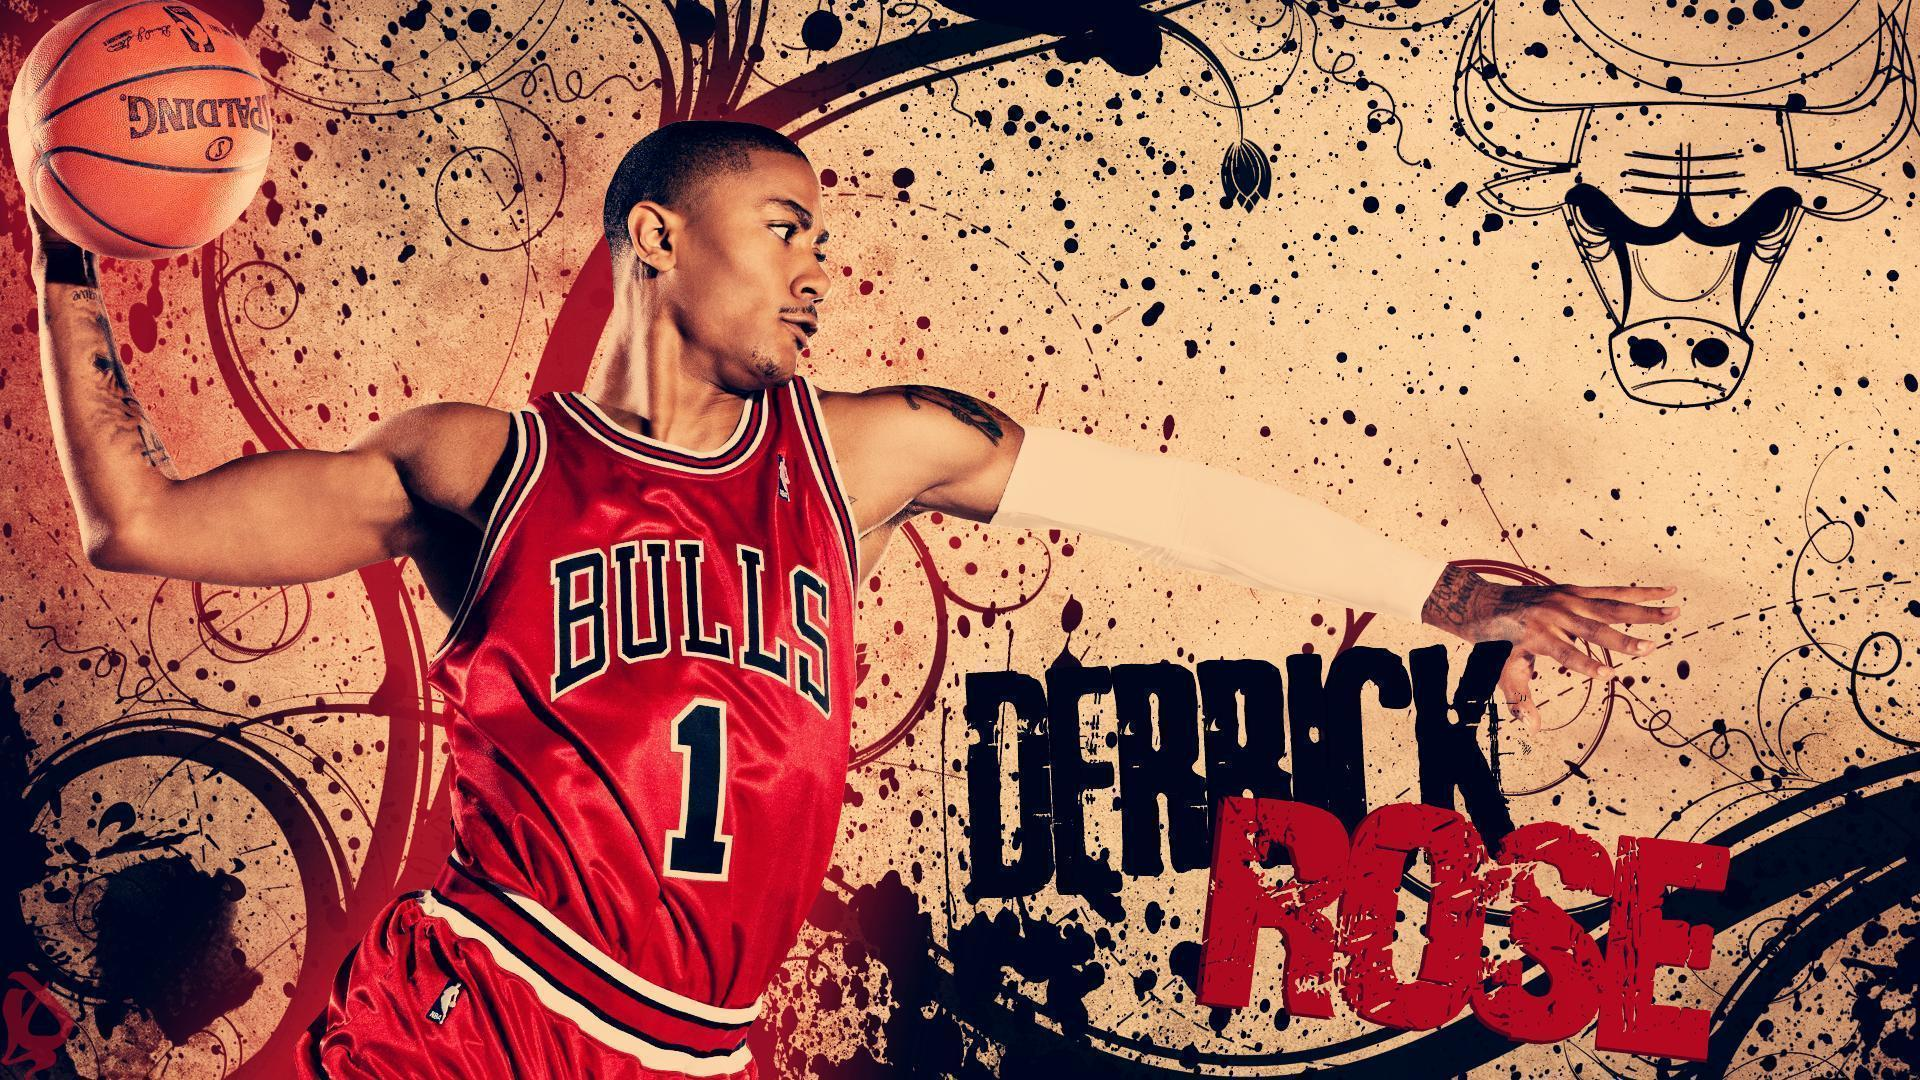 derrick rose wallpapers – 1920×1080 High Definition Wallpapers